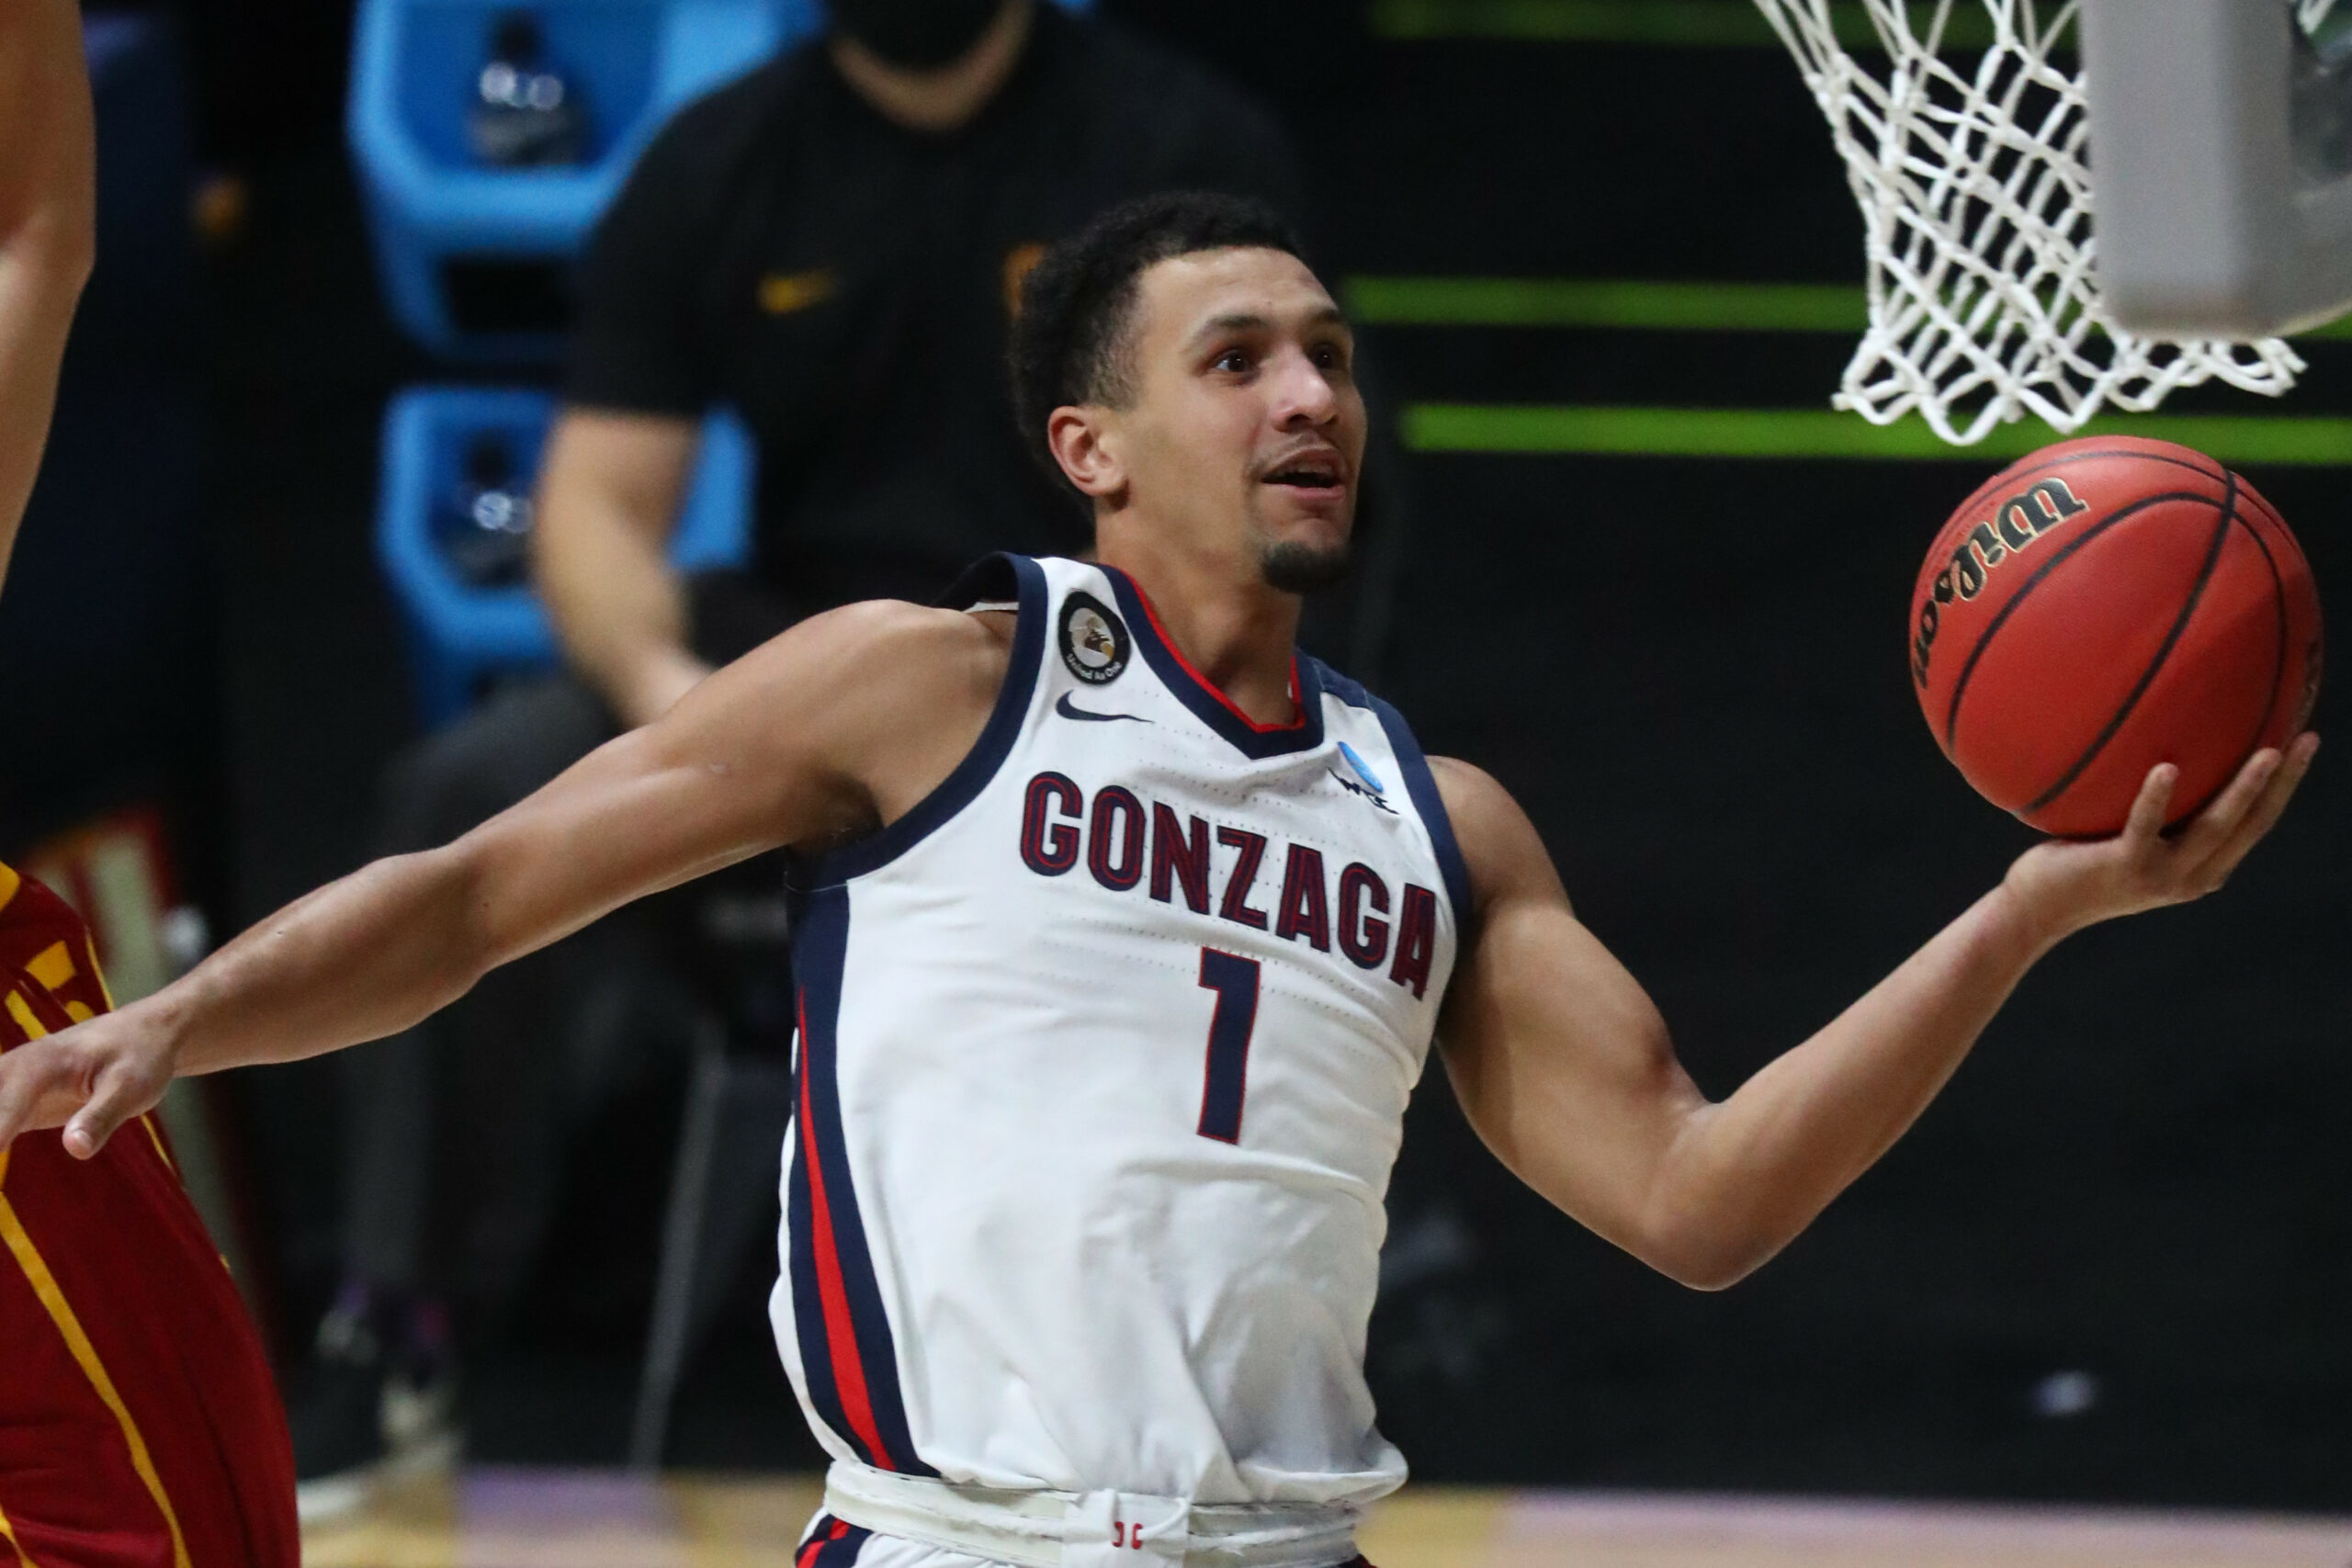 Choosing basketball over football was tough for Jalen Suggs